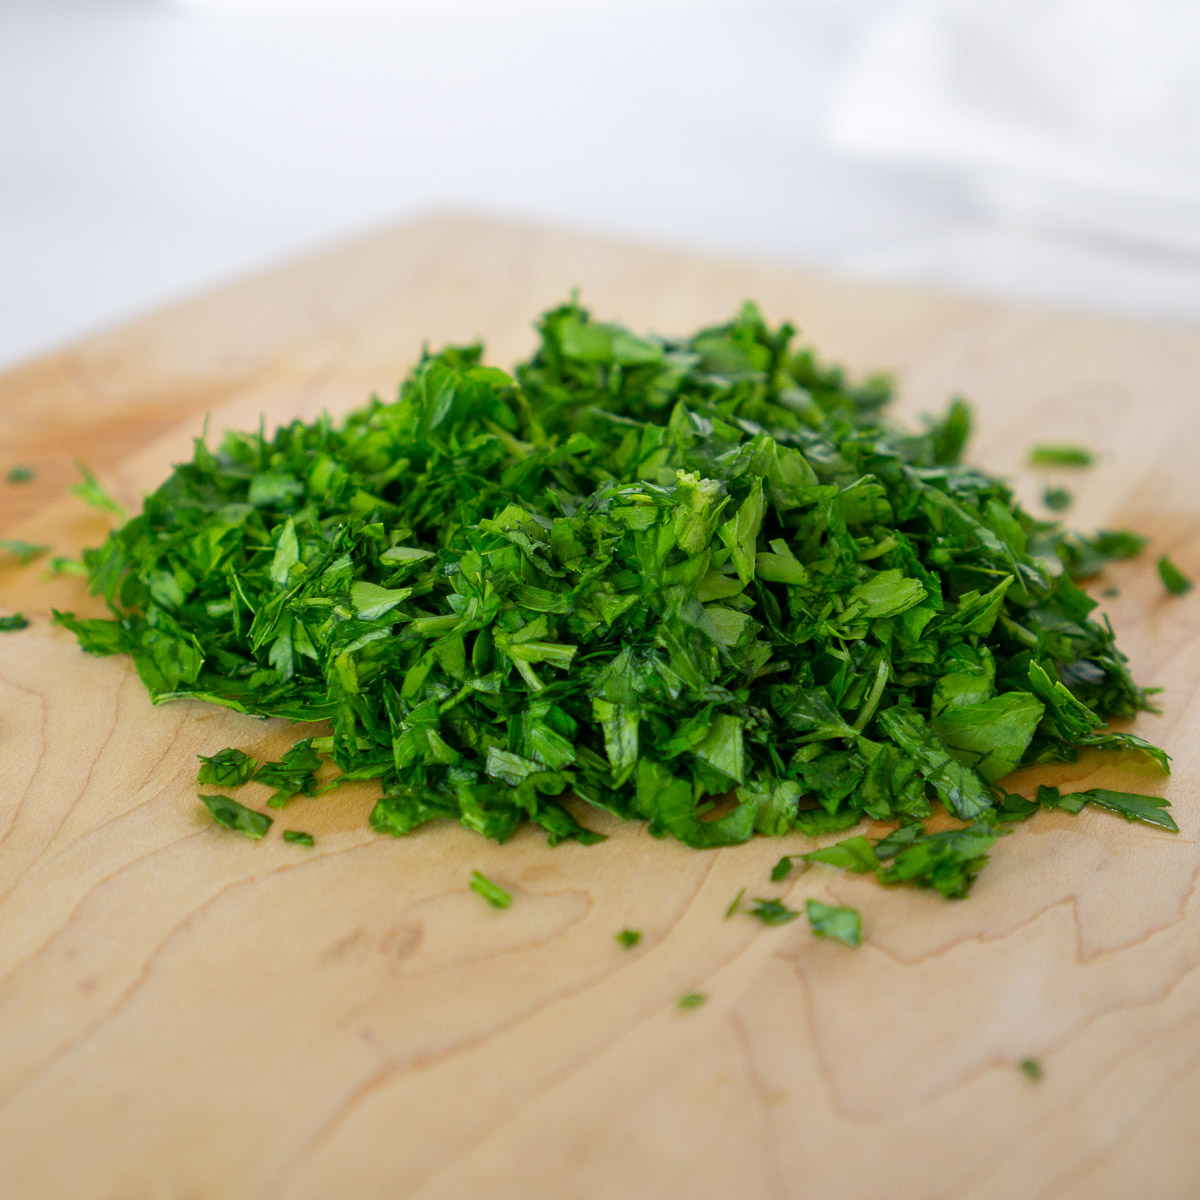 diced parsley and mint